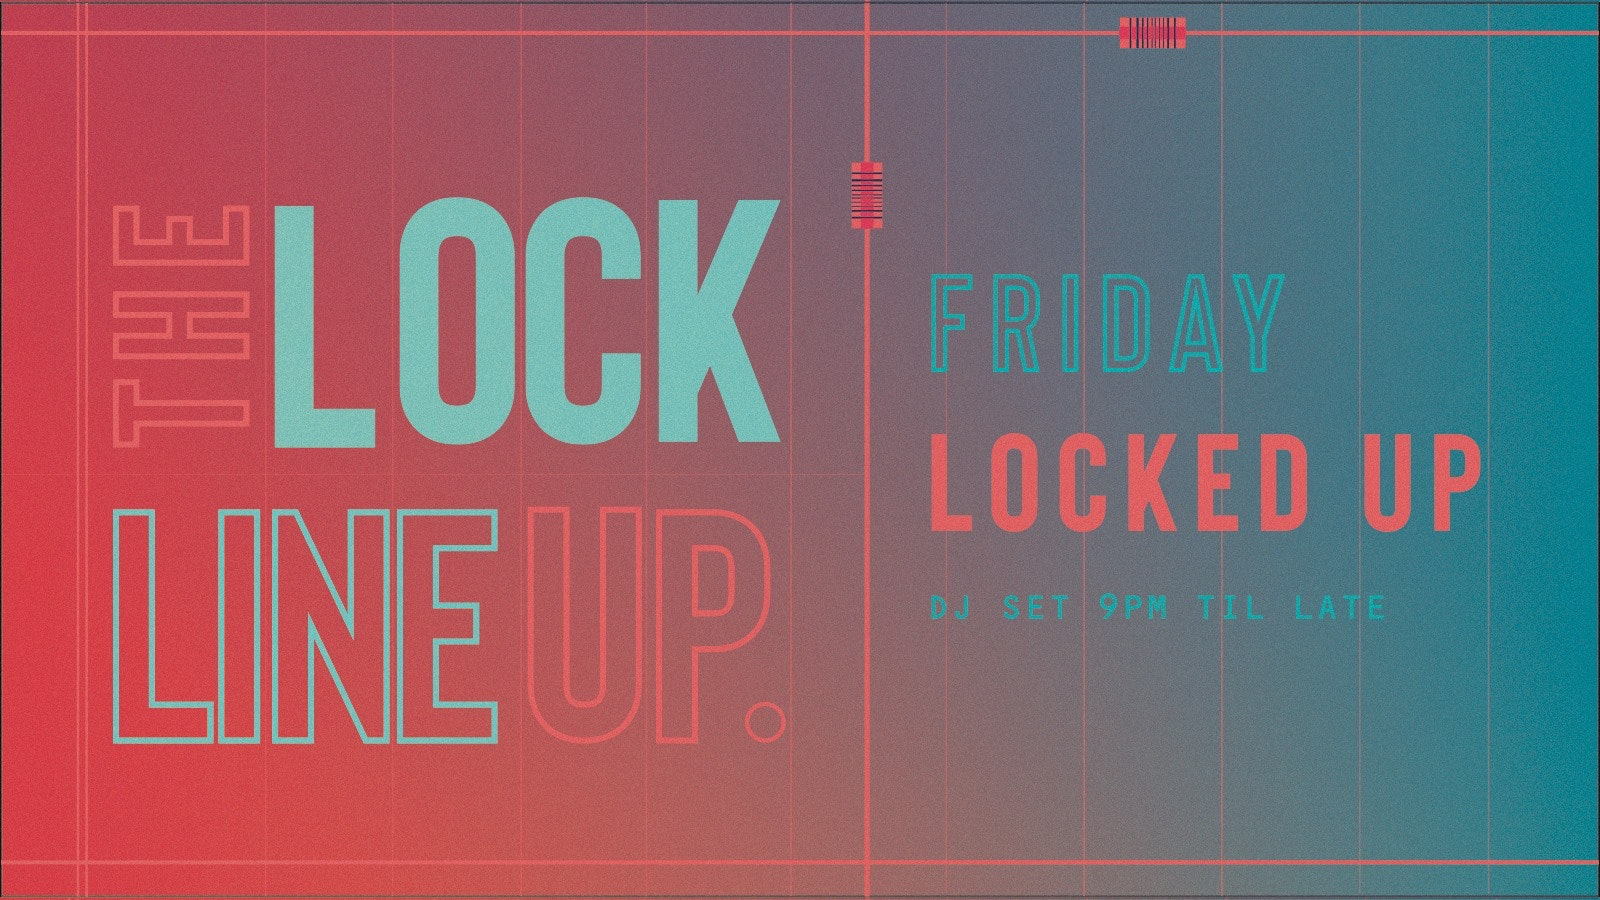 Locked Up – Every Friday